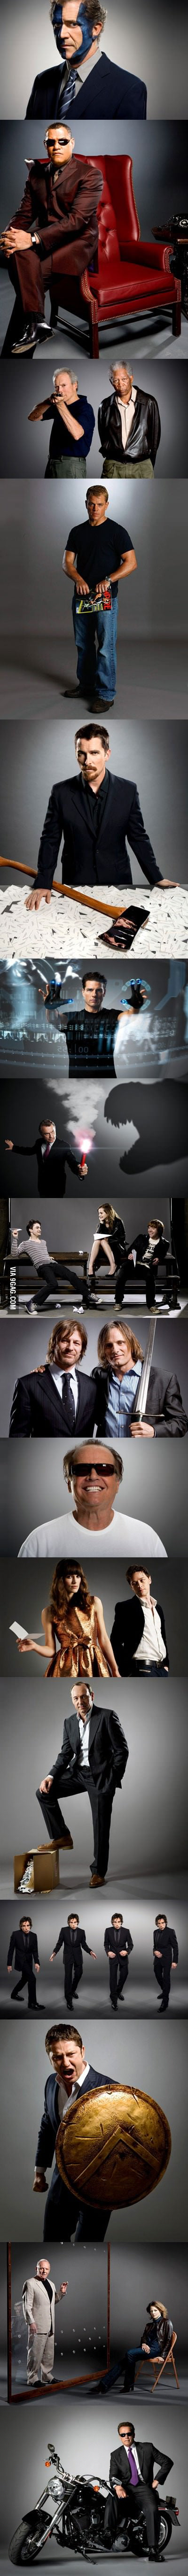 Epic pictures... are EPIC